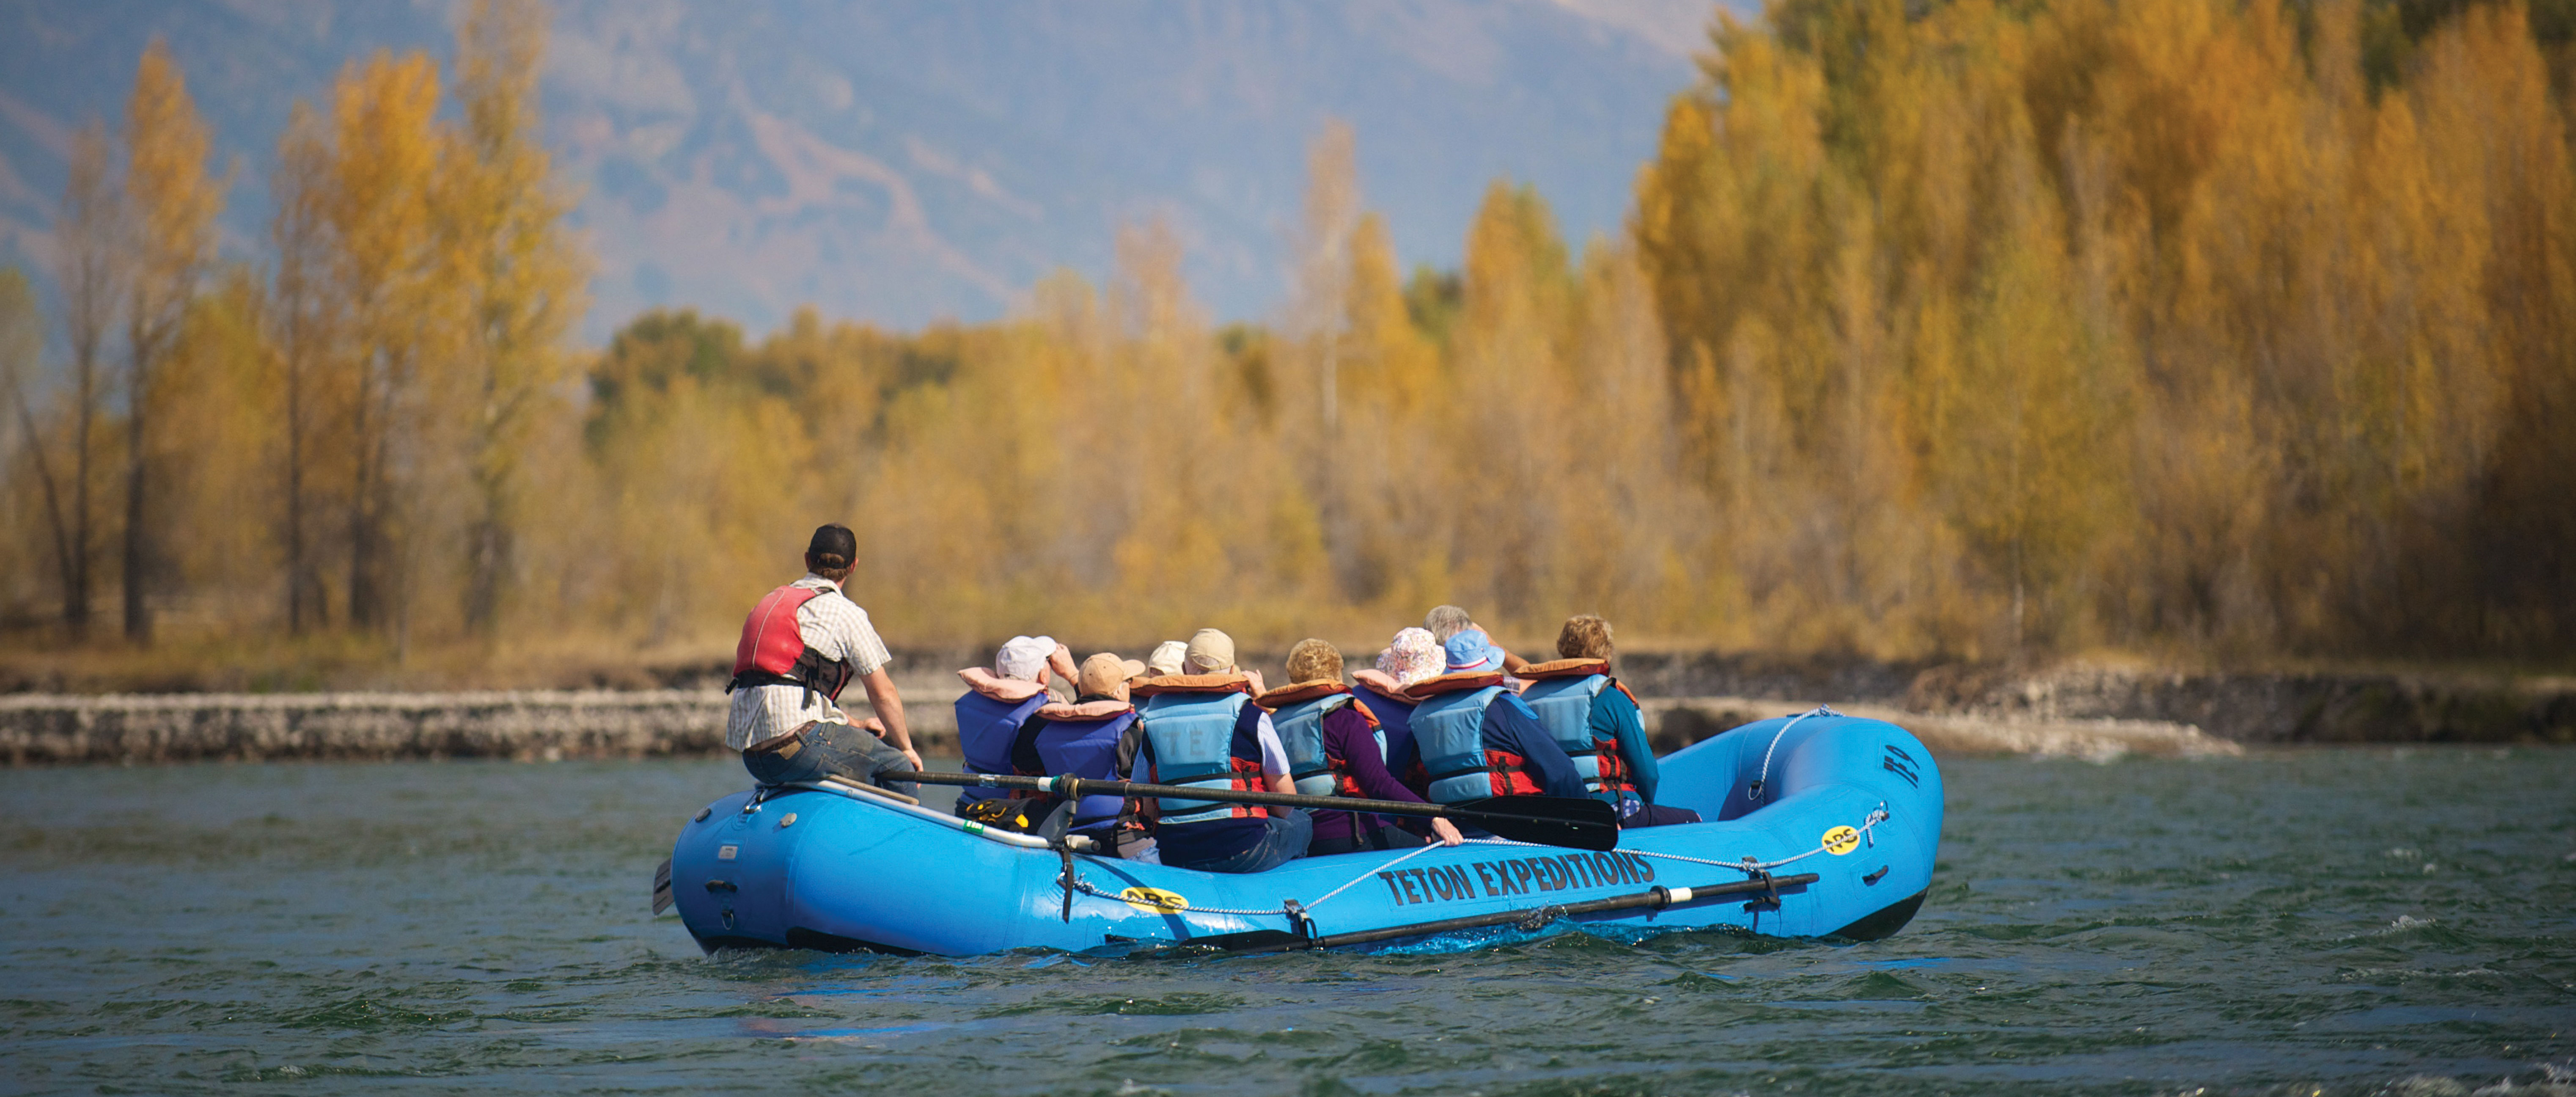 Scenic Float Trips on Snake River - Jackson Hole Wyoming